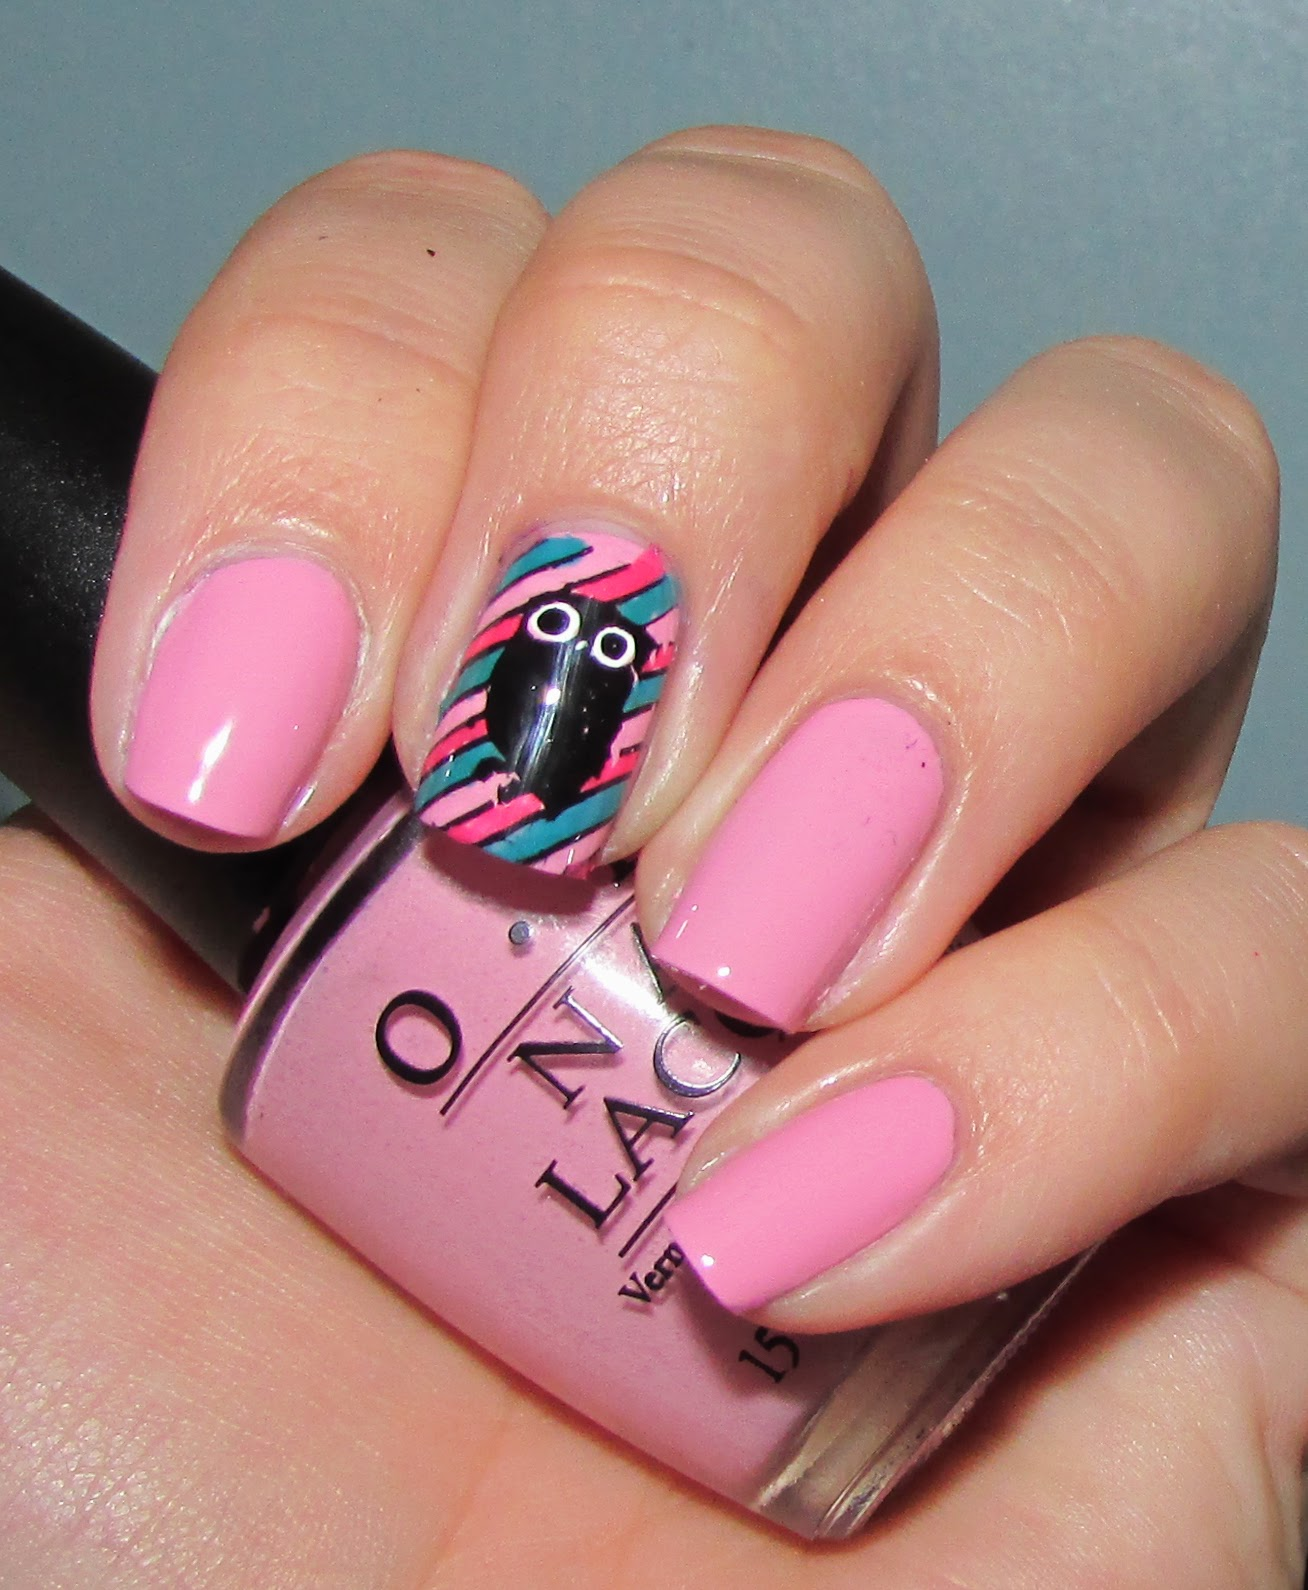 Life in Lacquer: Owl Stamping Nail Art